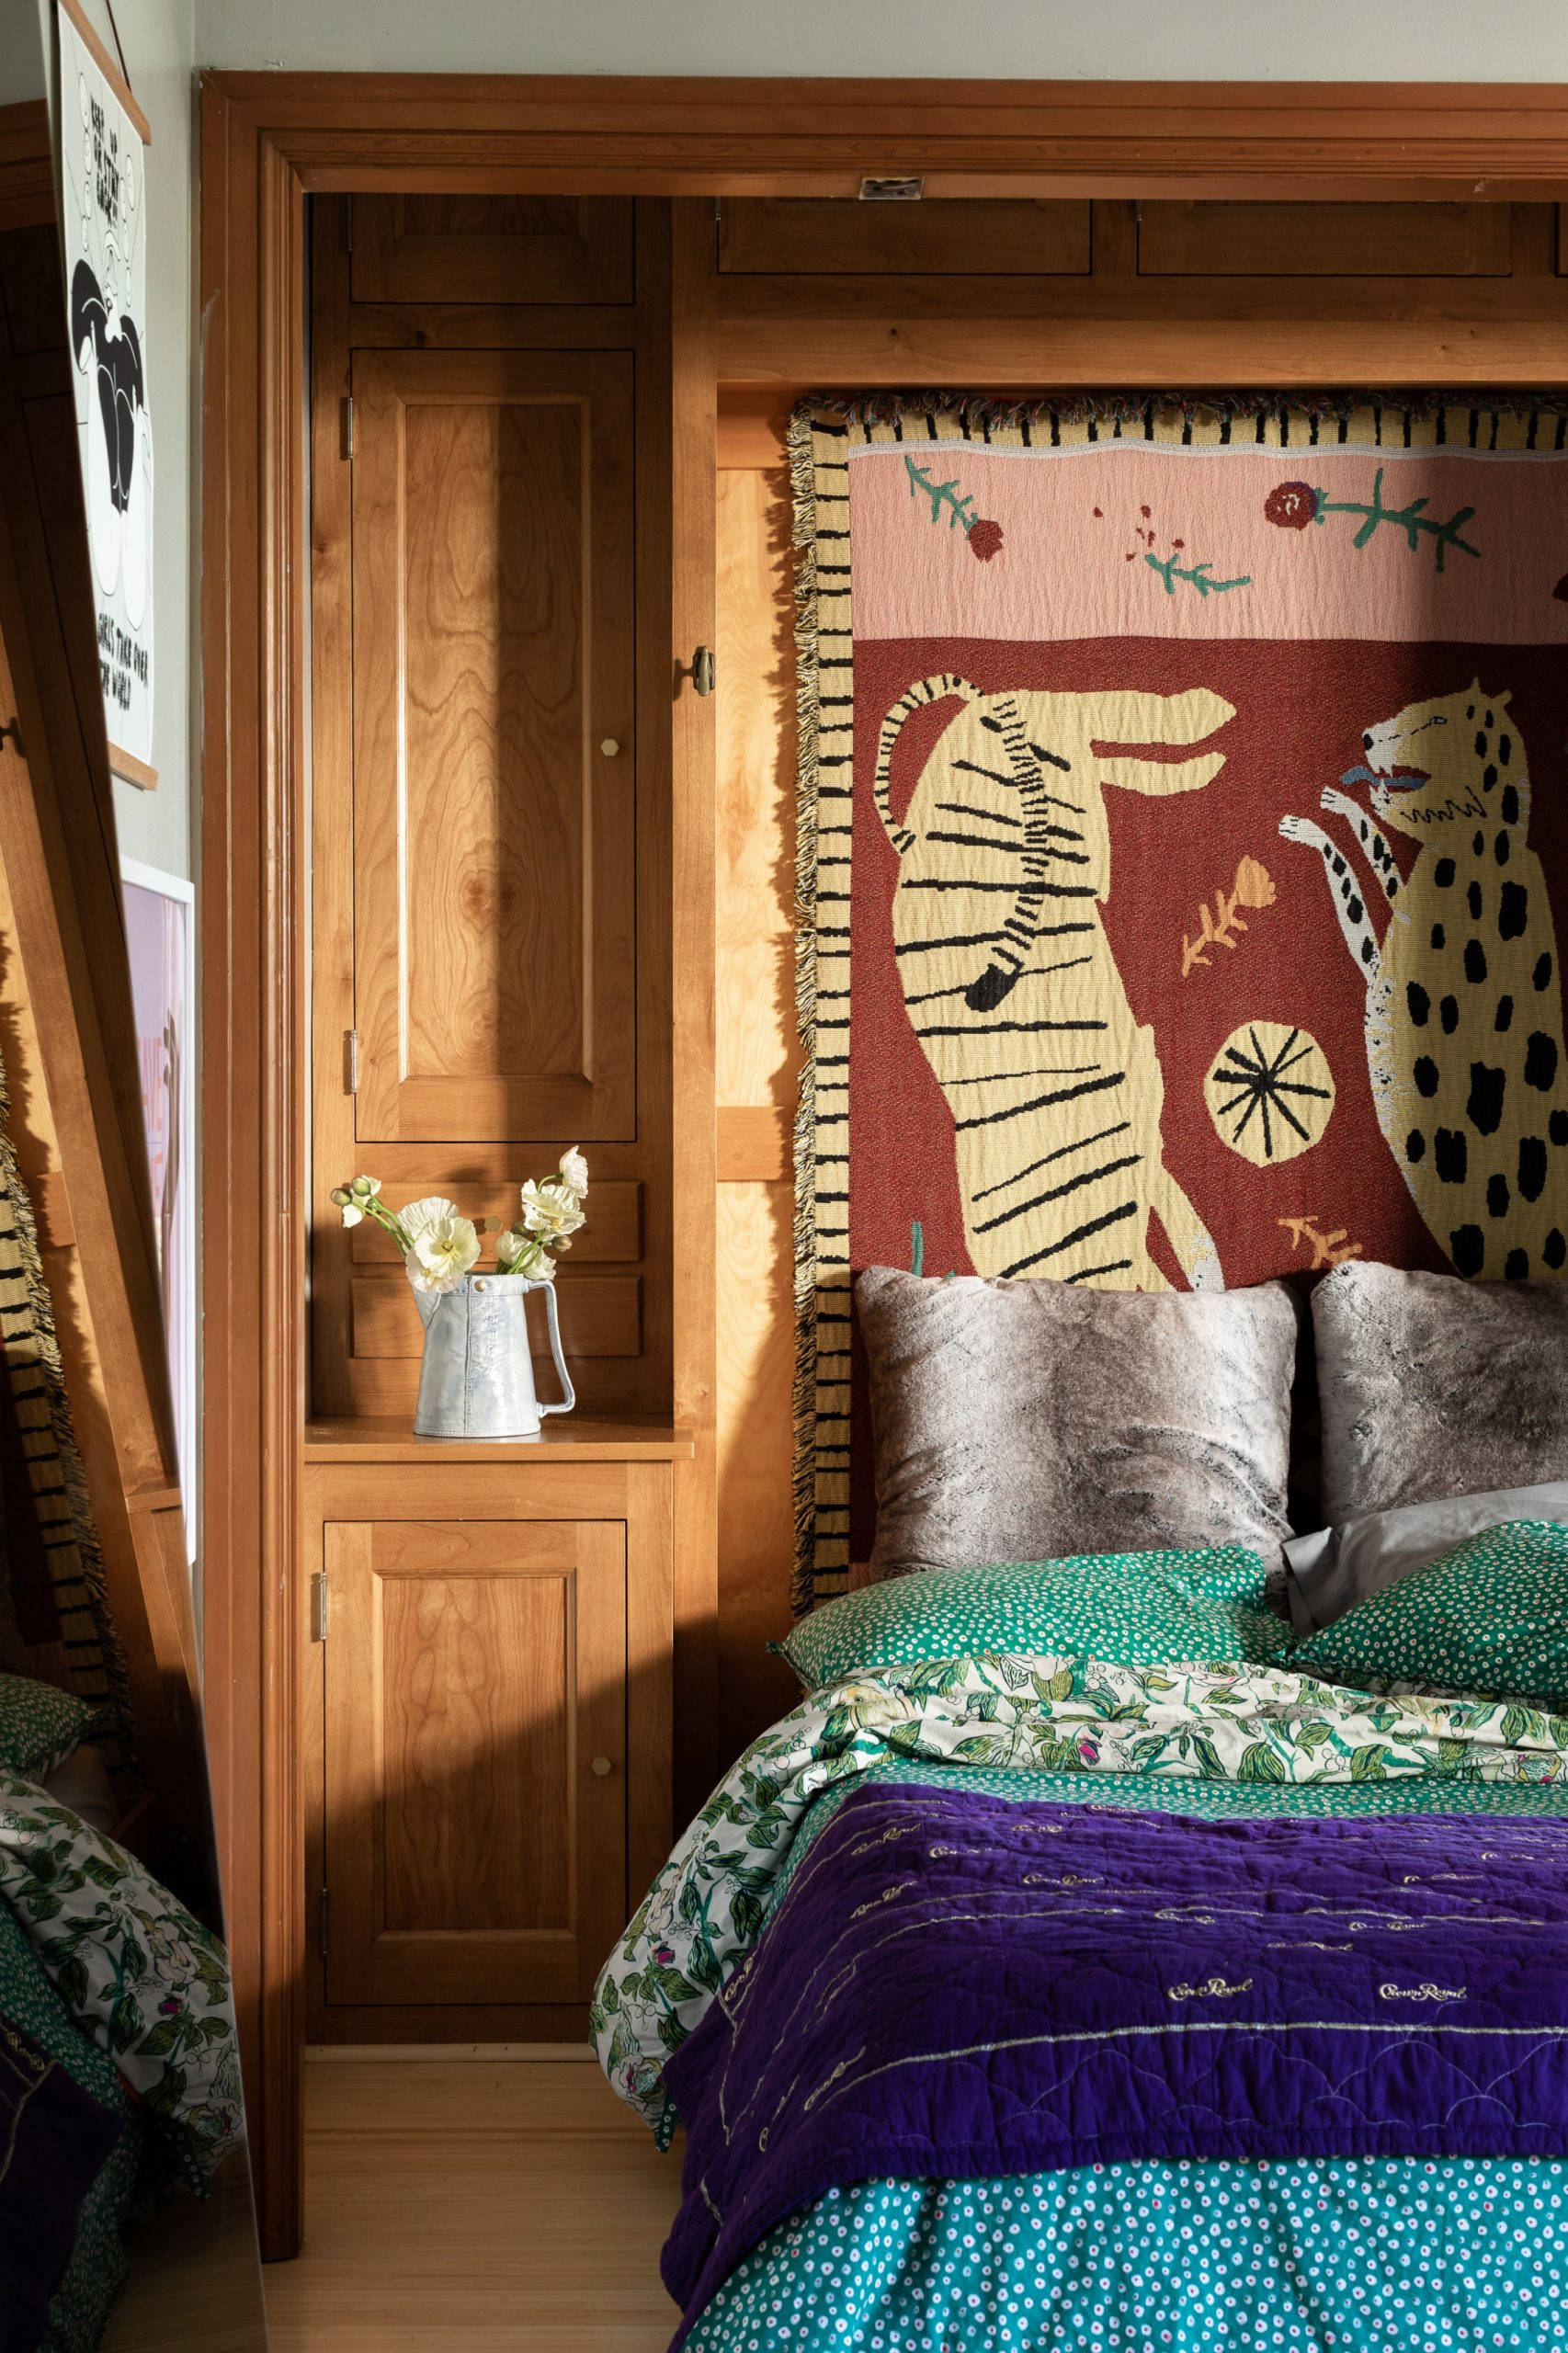 12 Small Bedroom Ideas - How to Decorate a Small Bedroom  - Bedroom Ideas Apartment Therapy